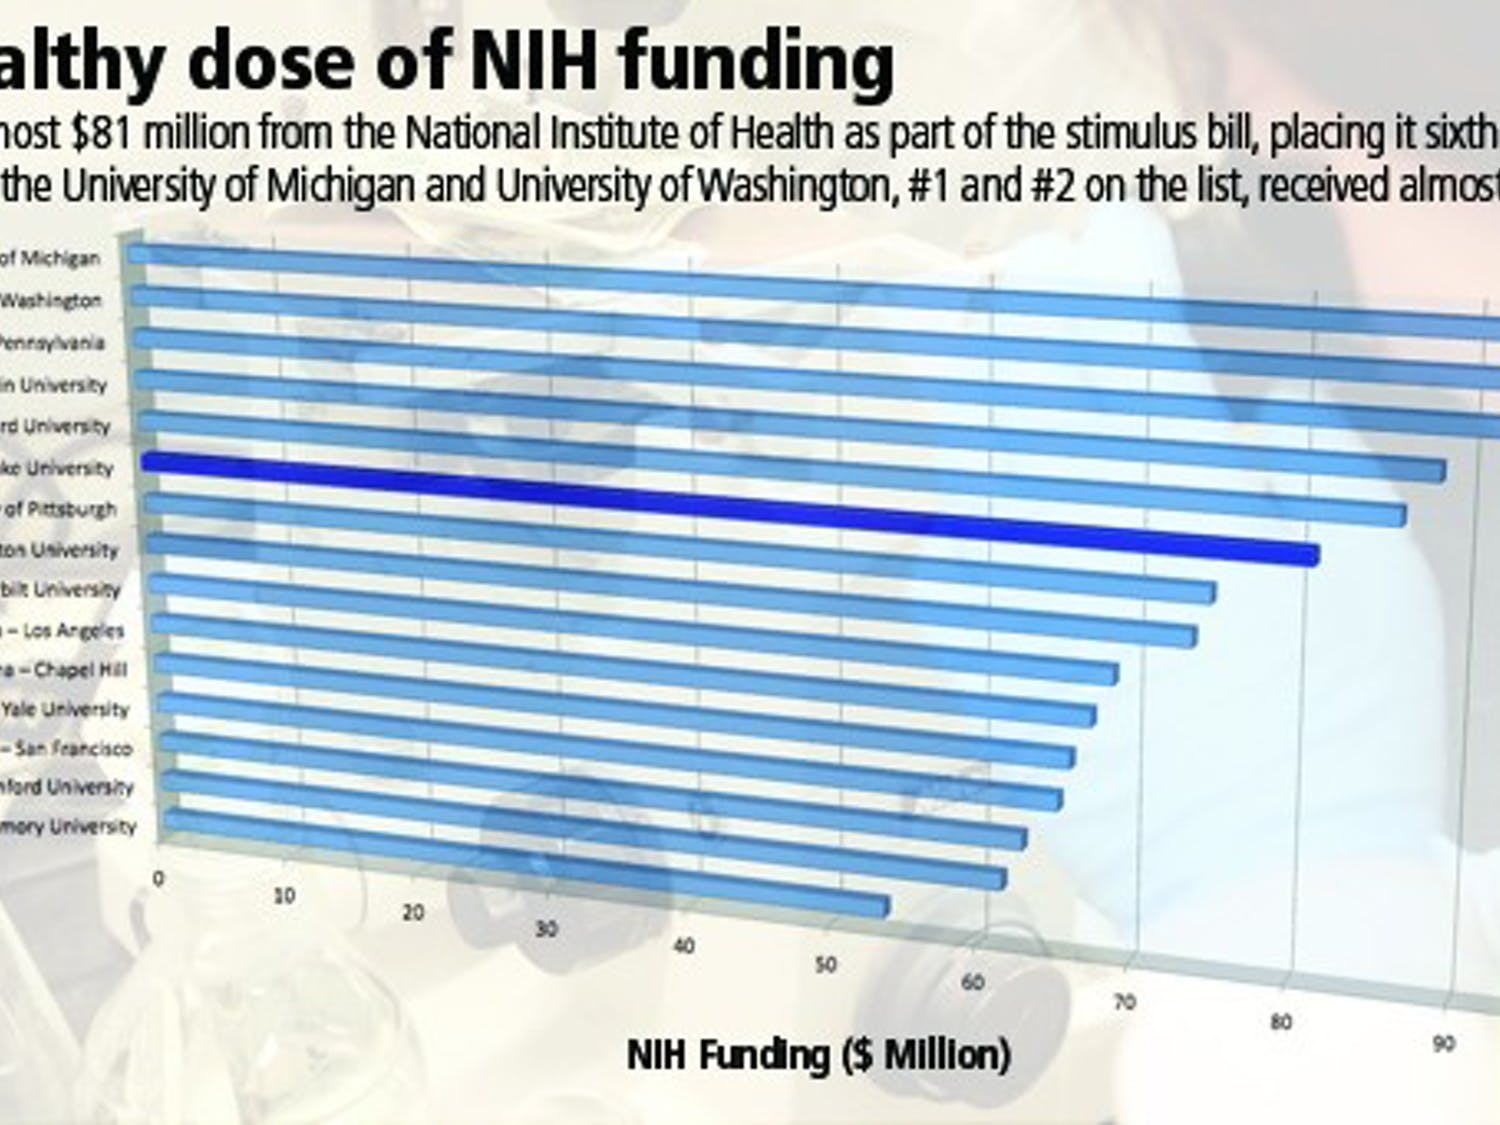 Duke received the sixth most NIH funds among its peer institutions, according to the Department of Health and Human Services.